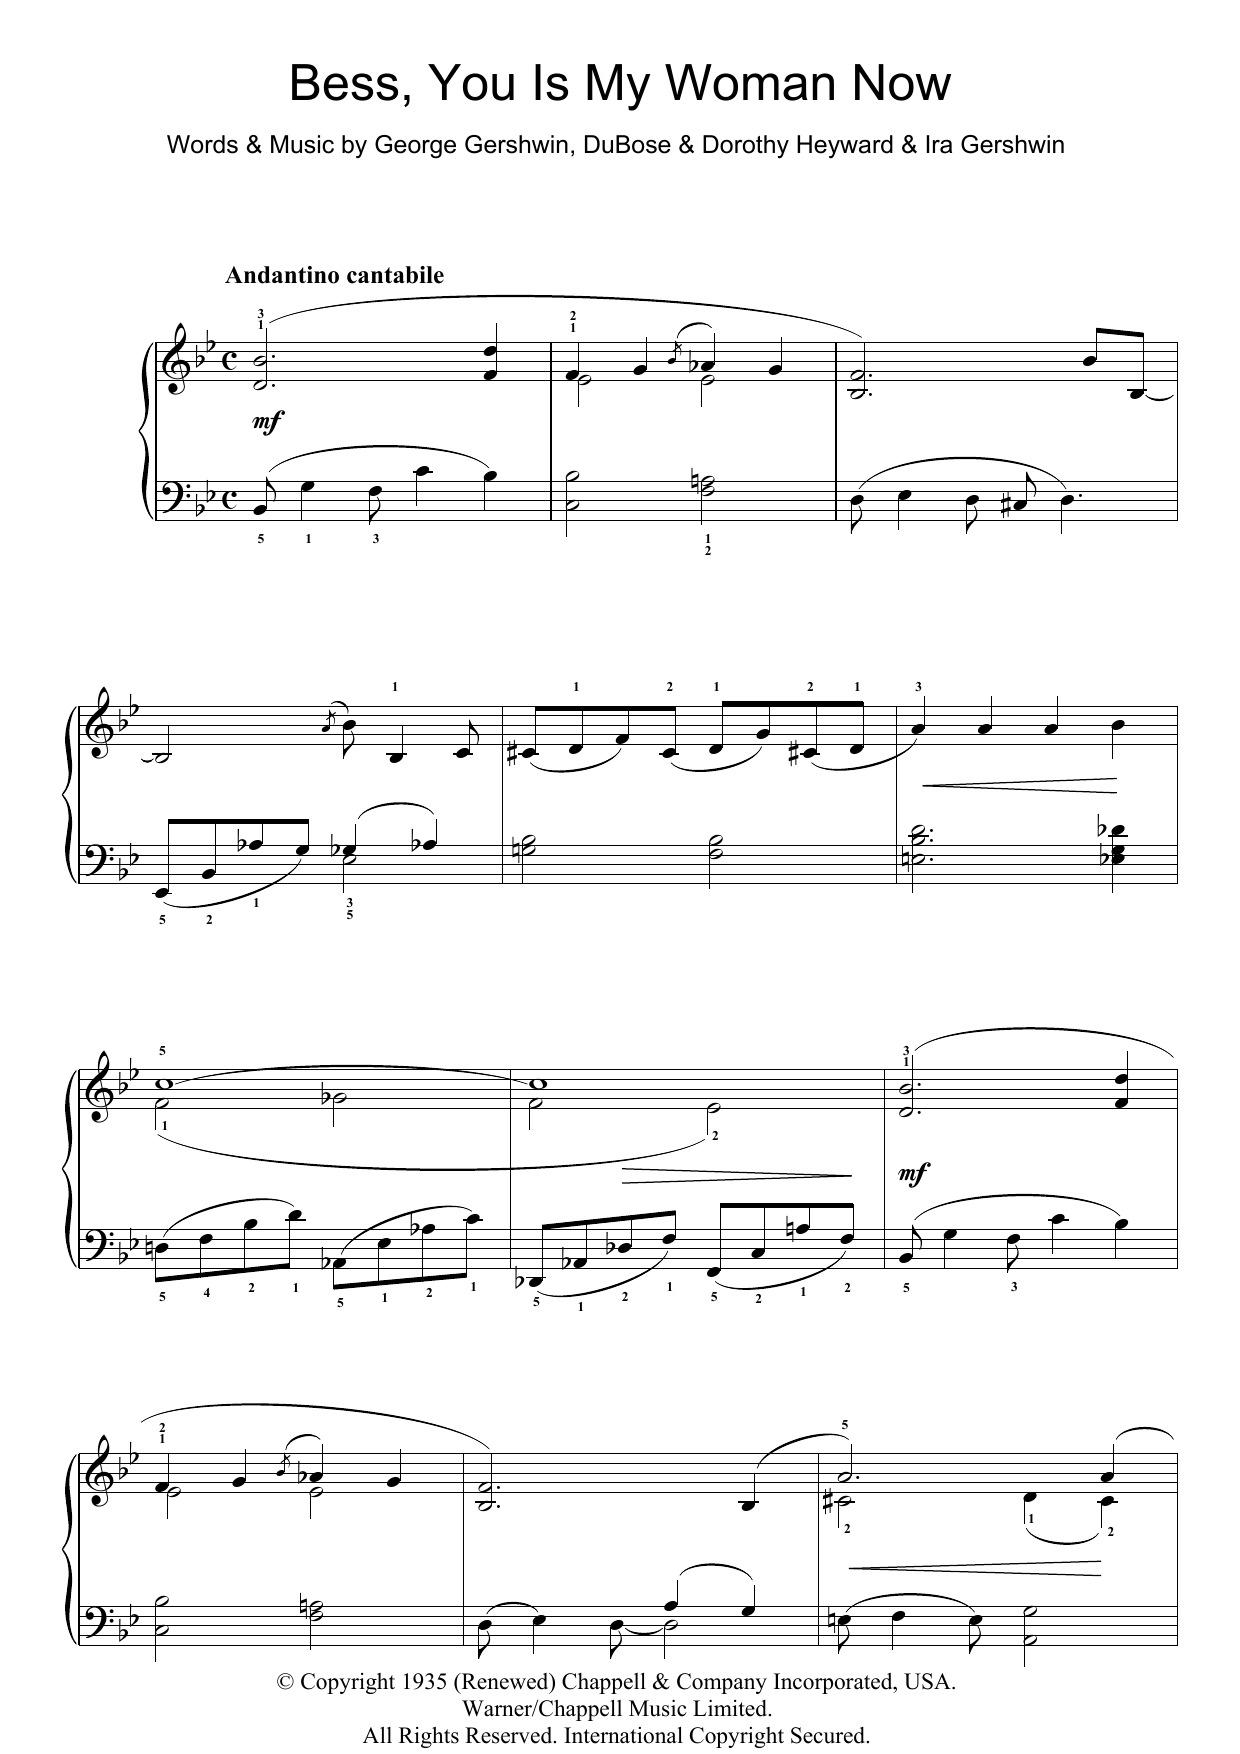 Bess, You Is My Woman Now sheet music for piano solo (chords) by Ira Gershwin